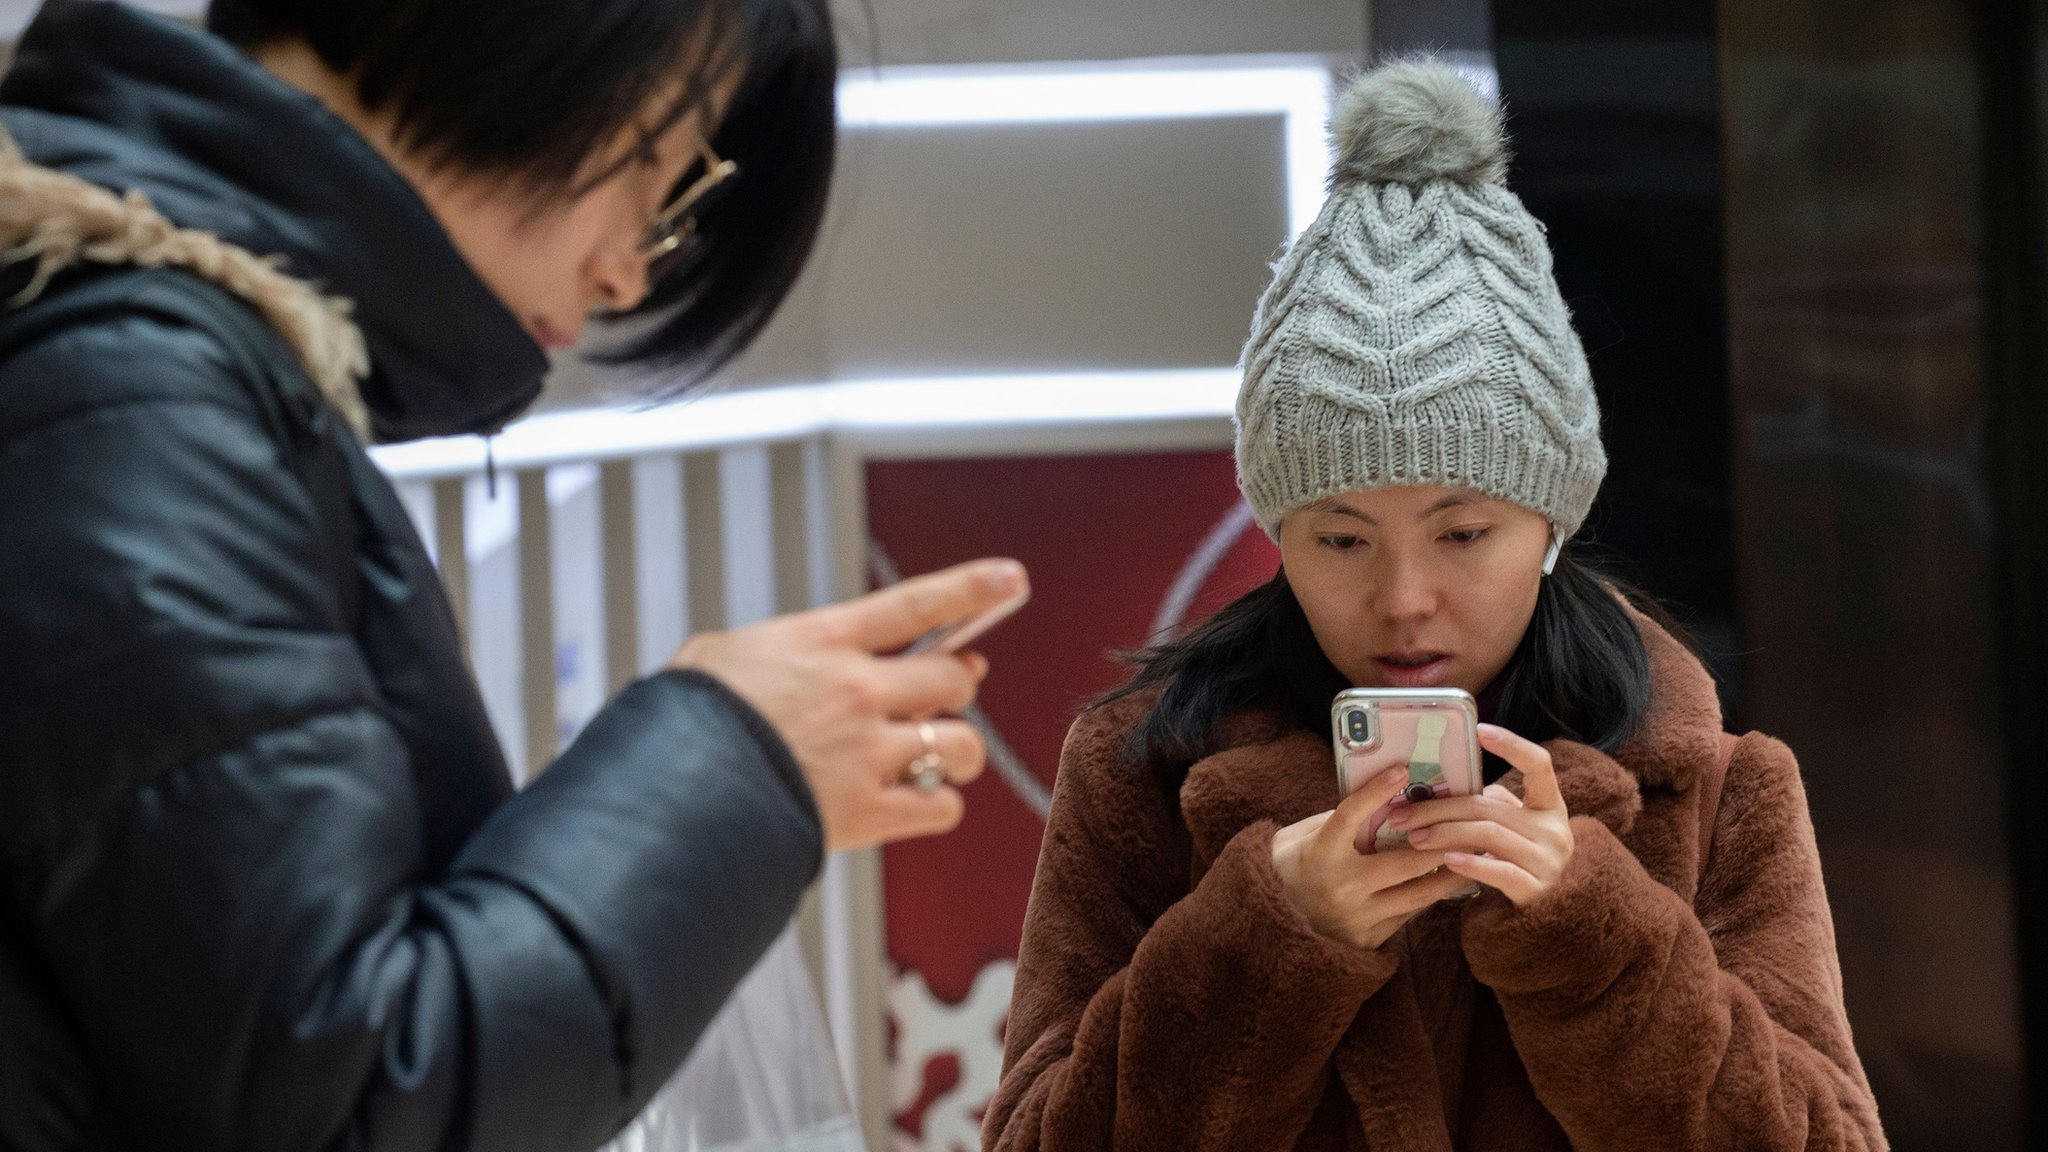 'Smartphone zombie' fine cheered on Chinese social media